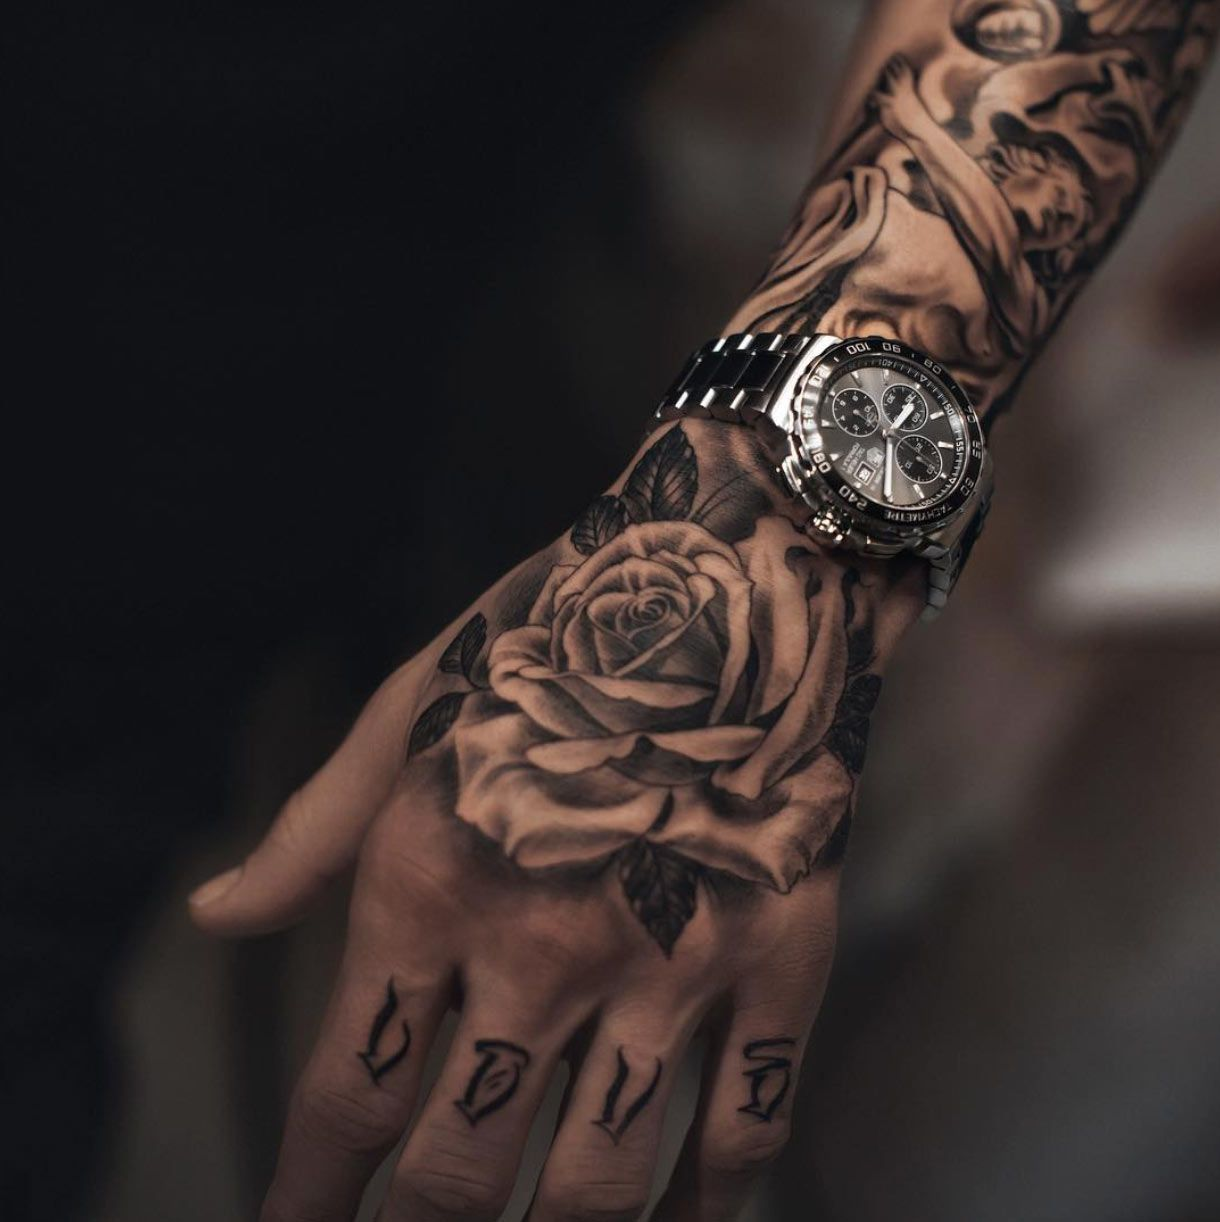 Top 71 Simple Hand Tattoo Ideas 2020 Inspiration Guide Hand Tattoos For Guys Simple Hand Tattoos Side Hand Tattoos